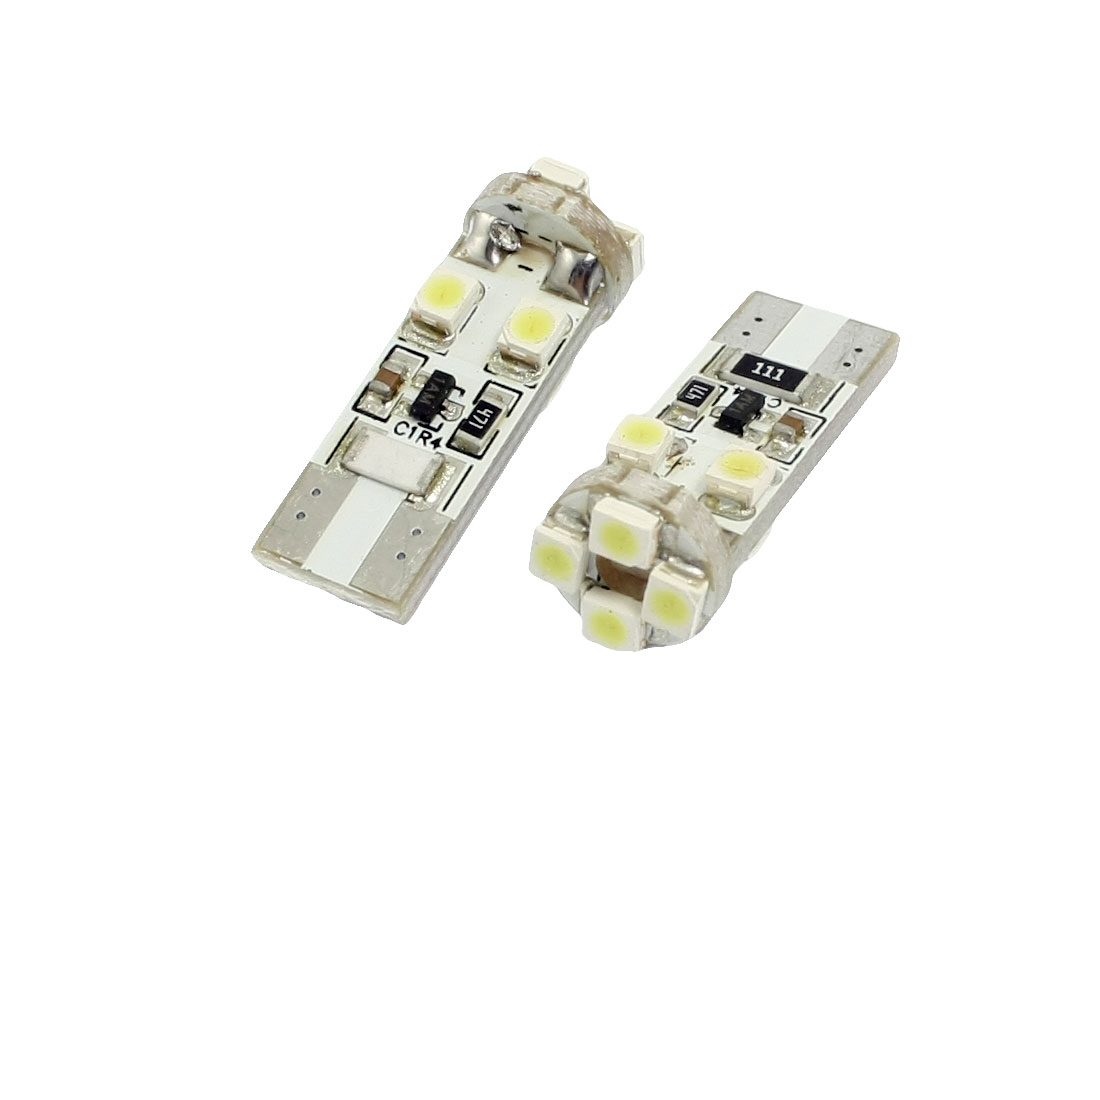 2 Pcs Car Canbus White 1210 3528 SMD 8-LED Light License Plate Lamp